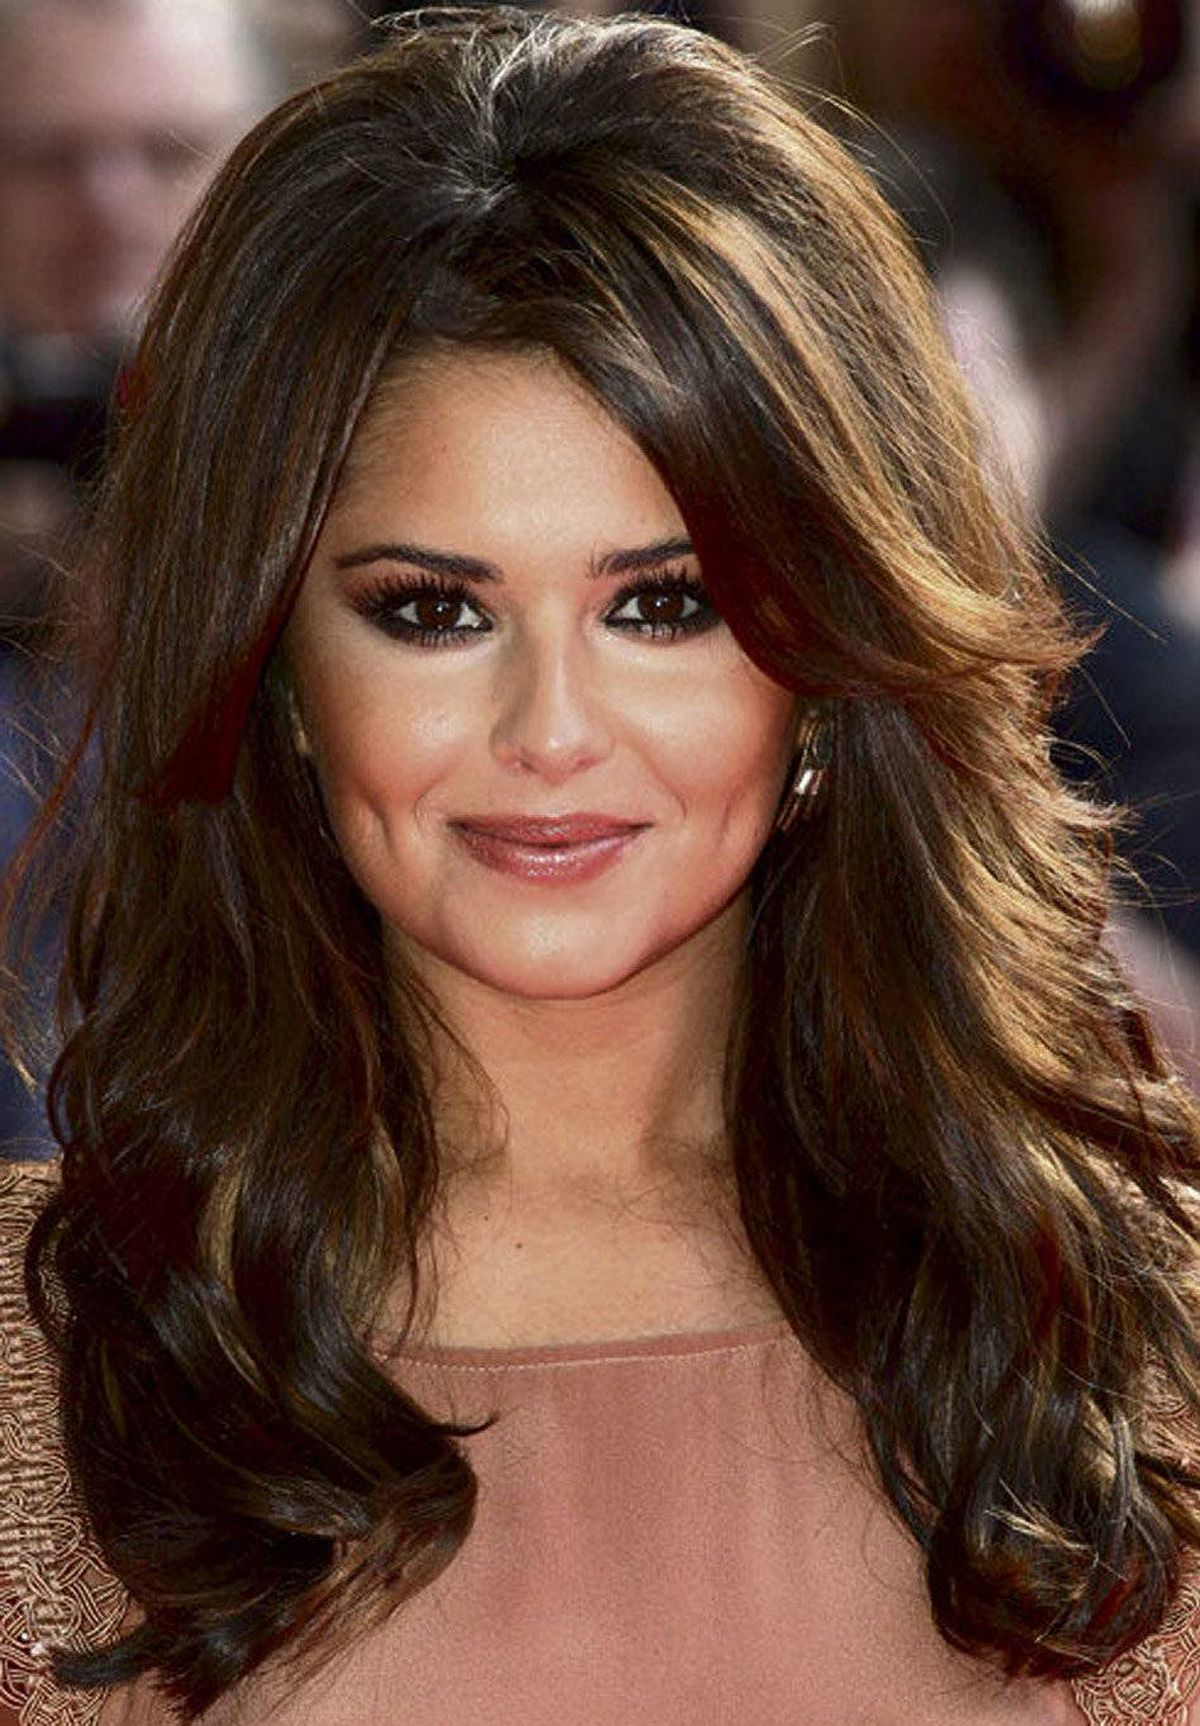 Cheryl Cole: A cut above